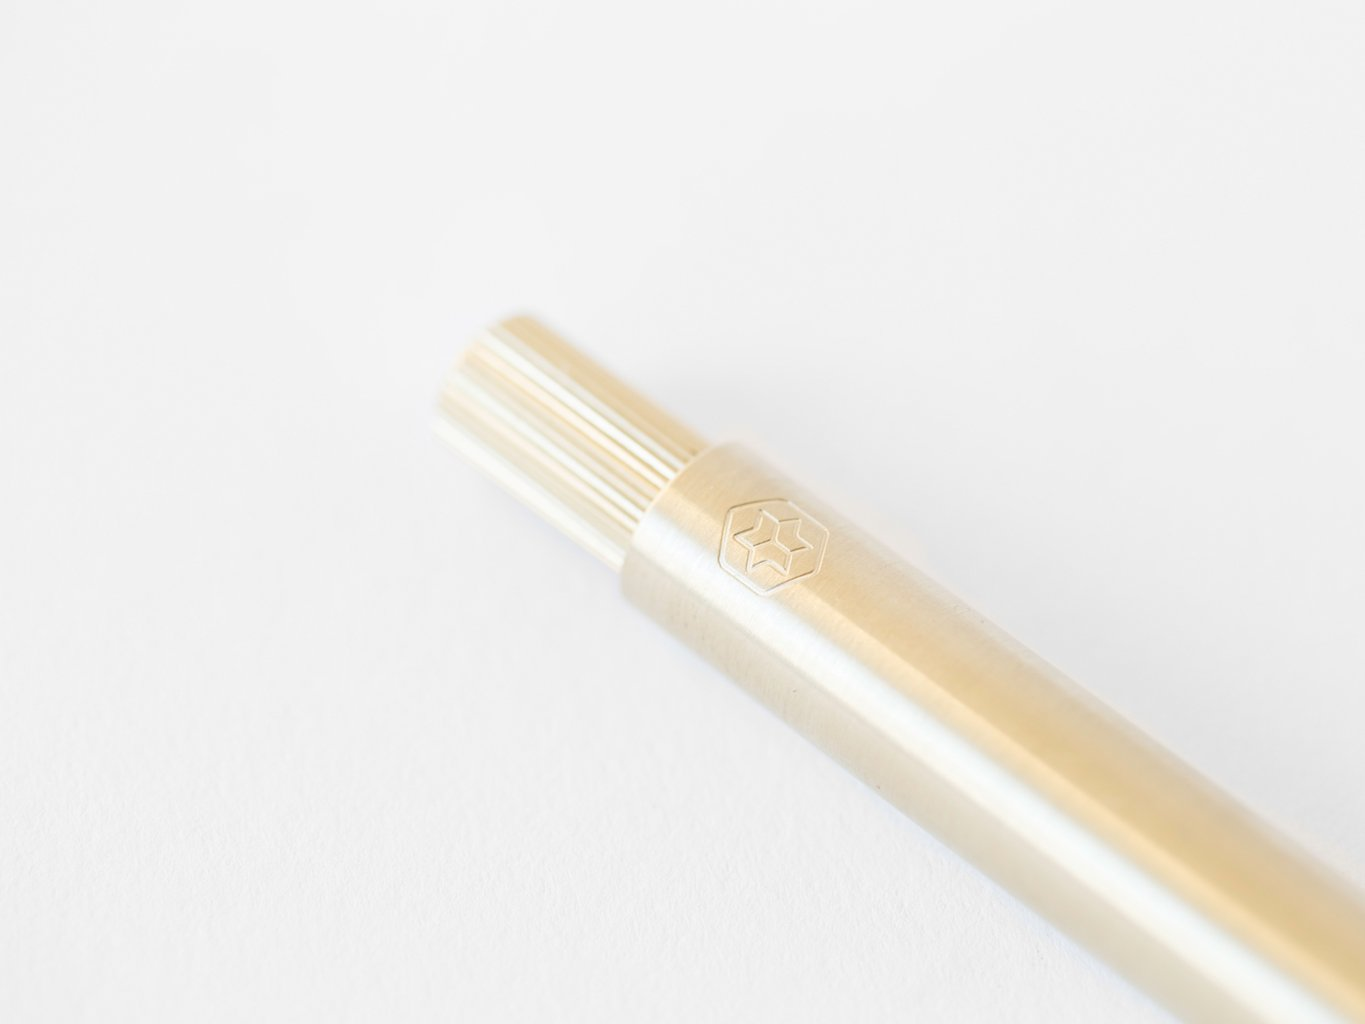 Ajoto - The Pen (14Ct Gold)